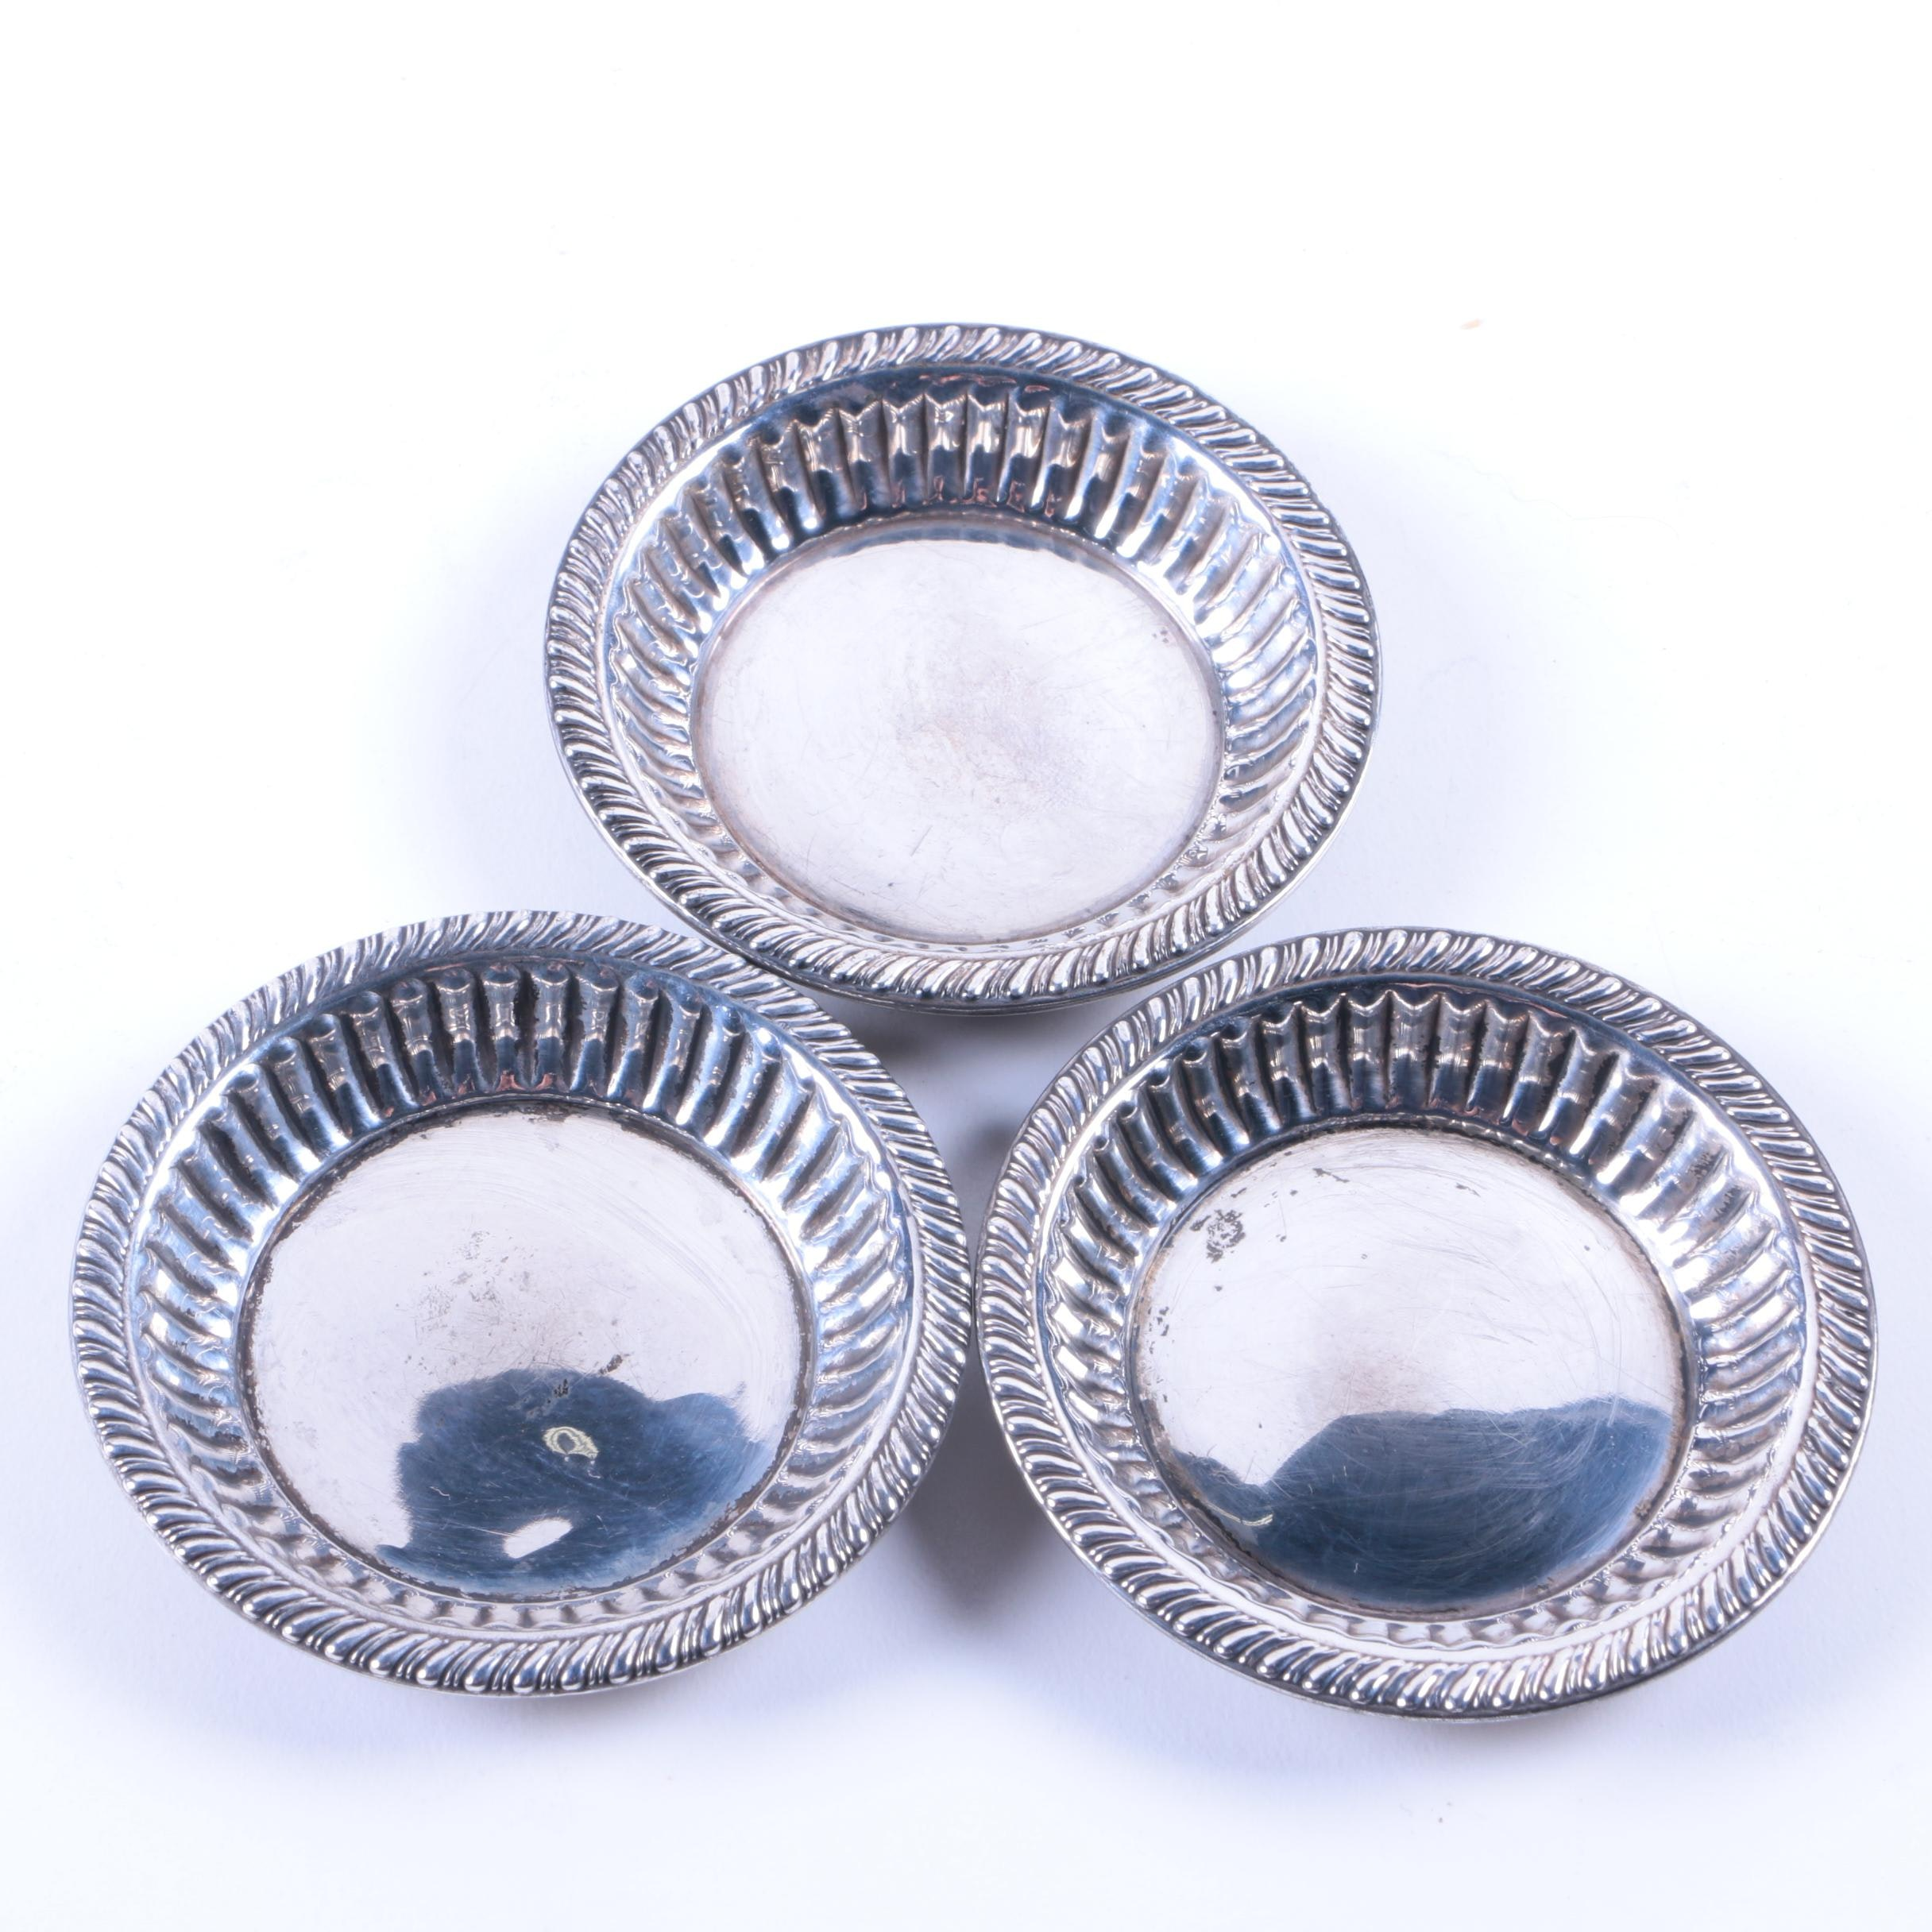 Small Sterling Silver Dish Set with Gadroon Rims